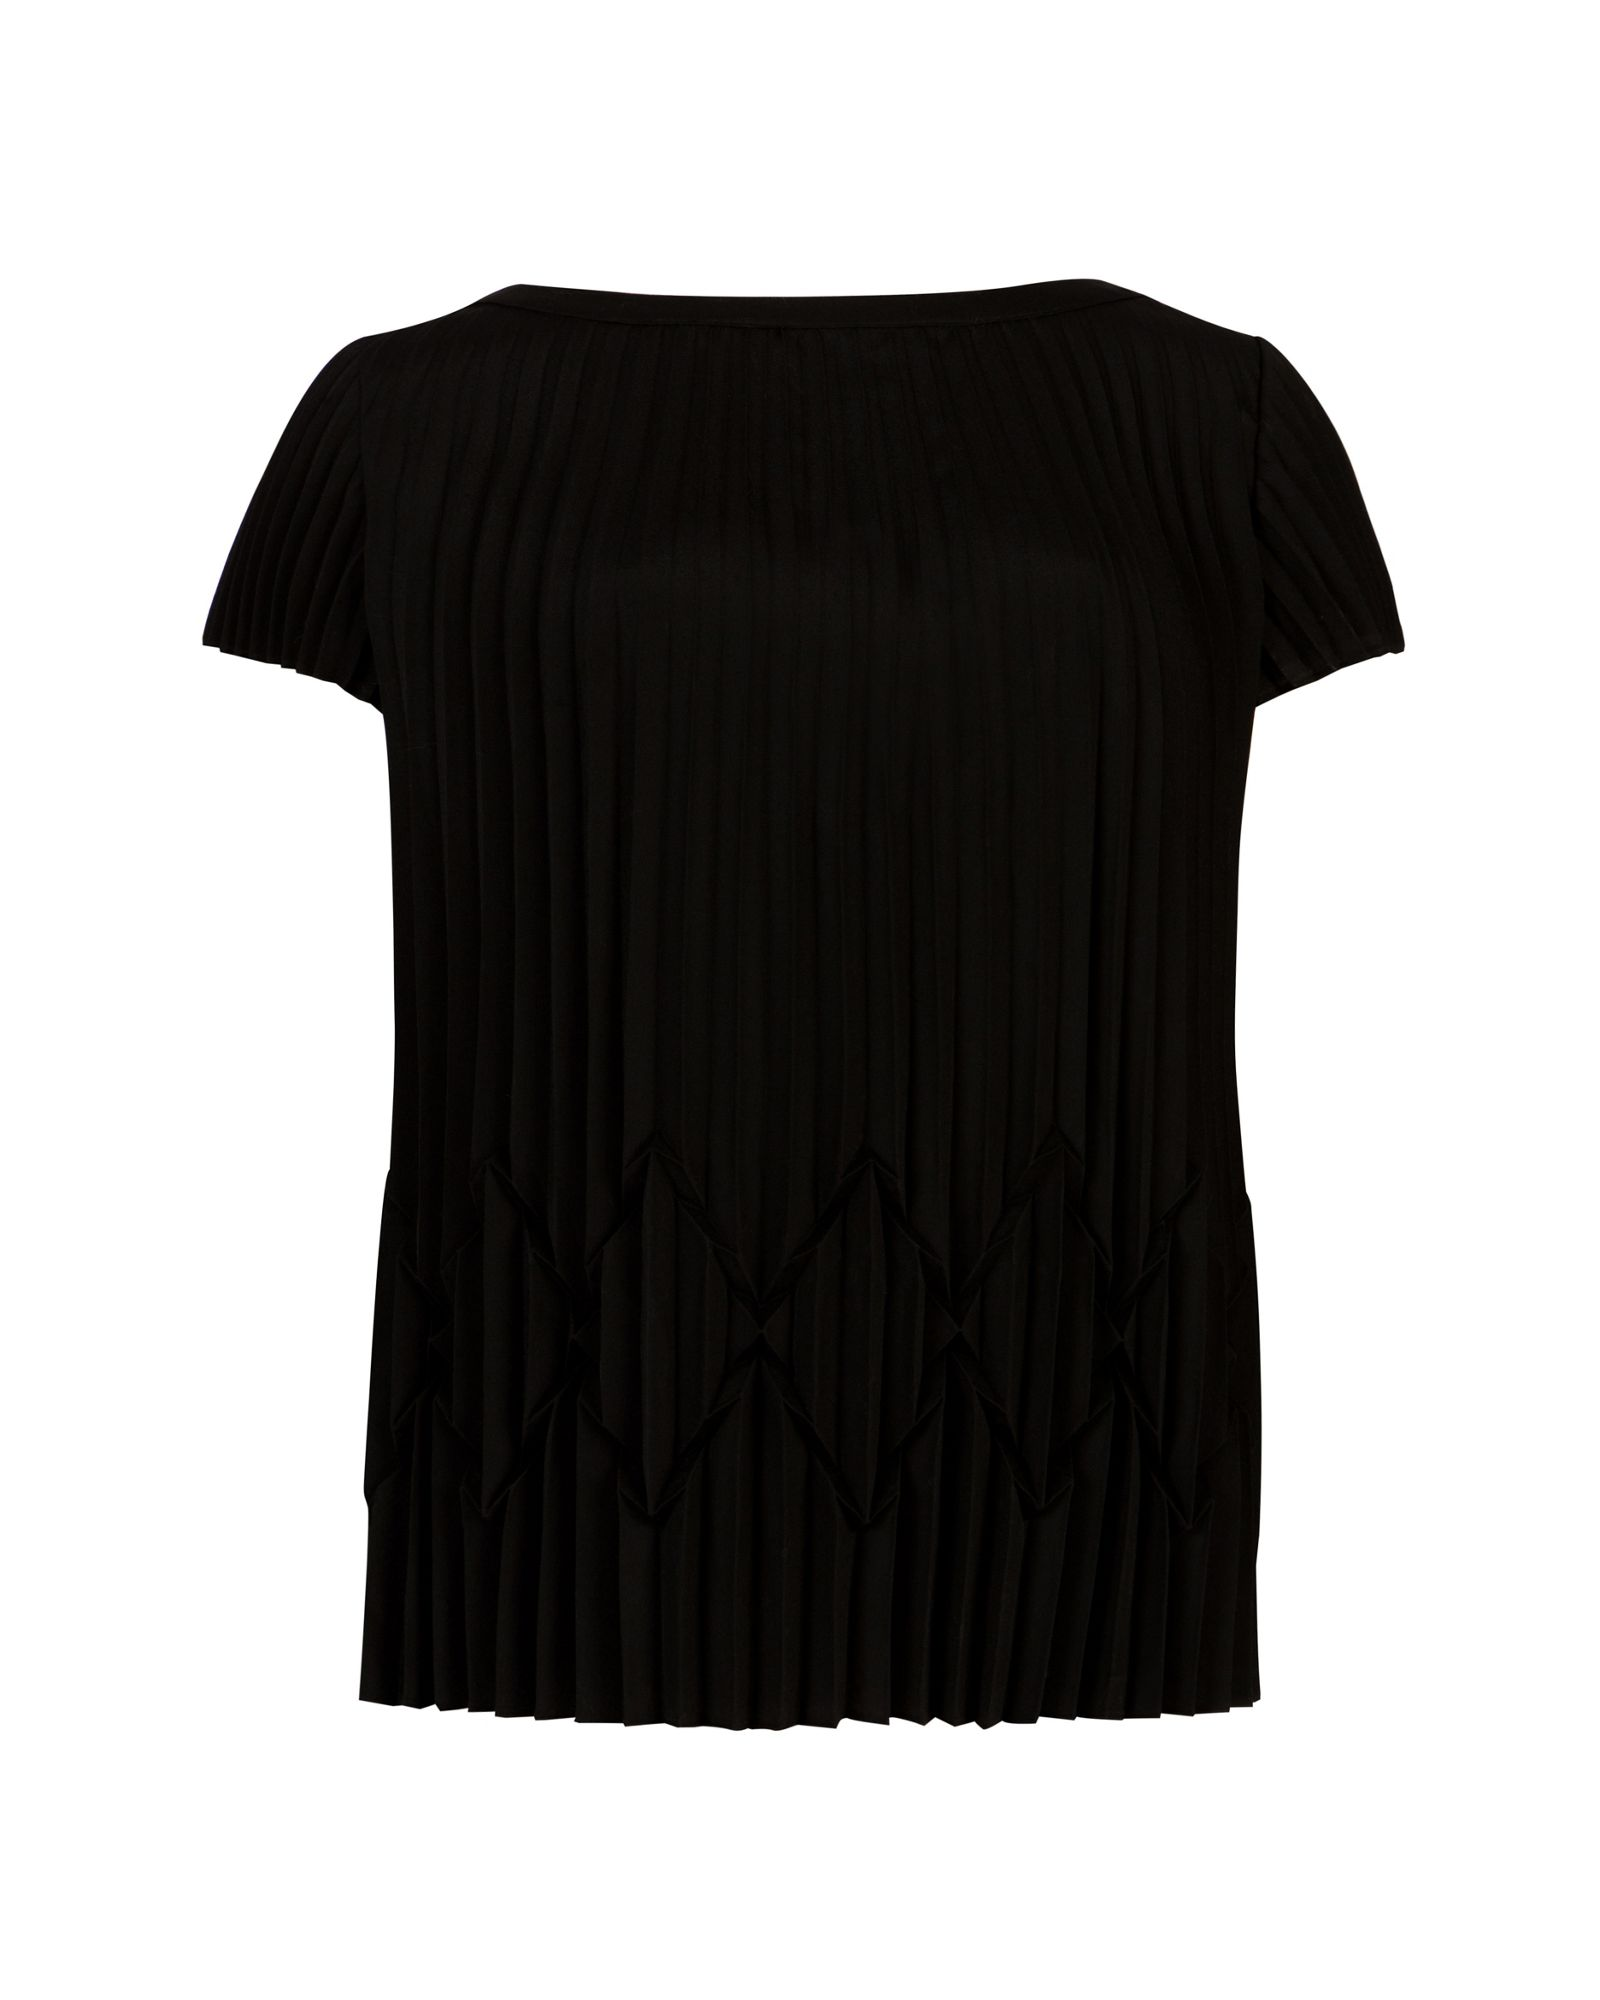 Ted Baker Pareen Pleated Top in Black | Lyst - photo#34